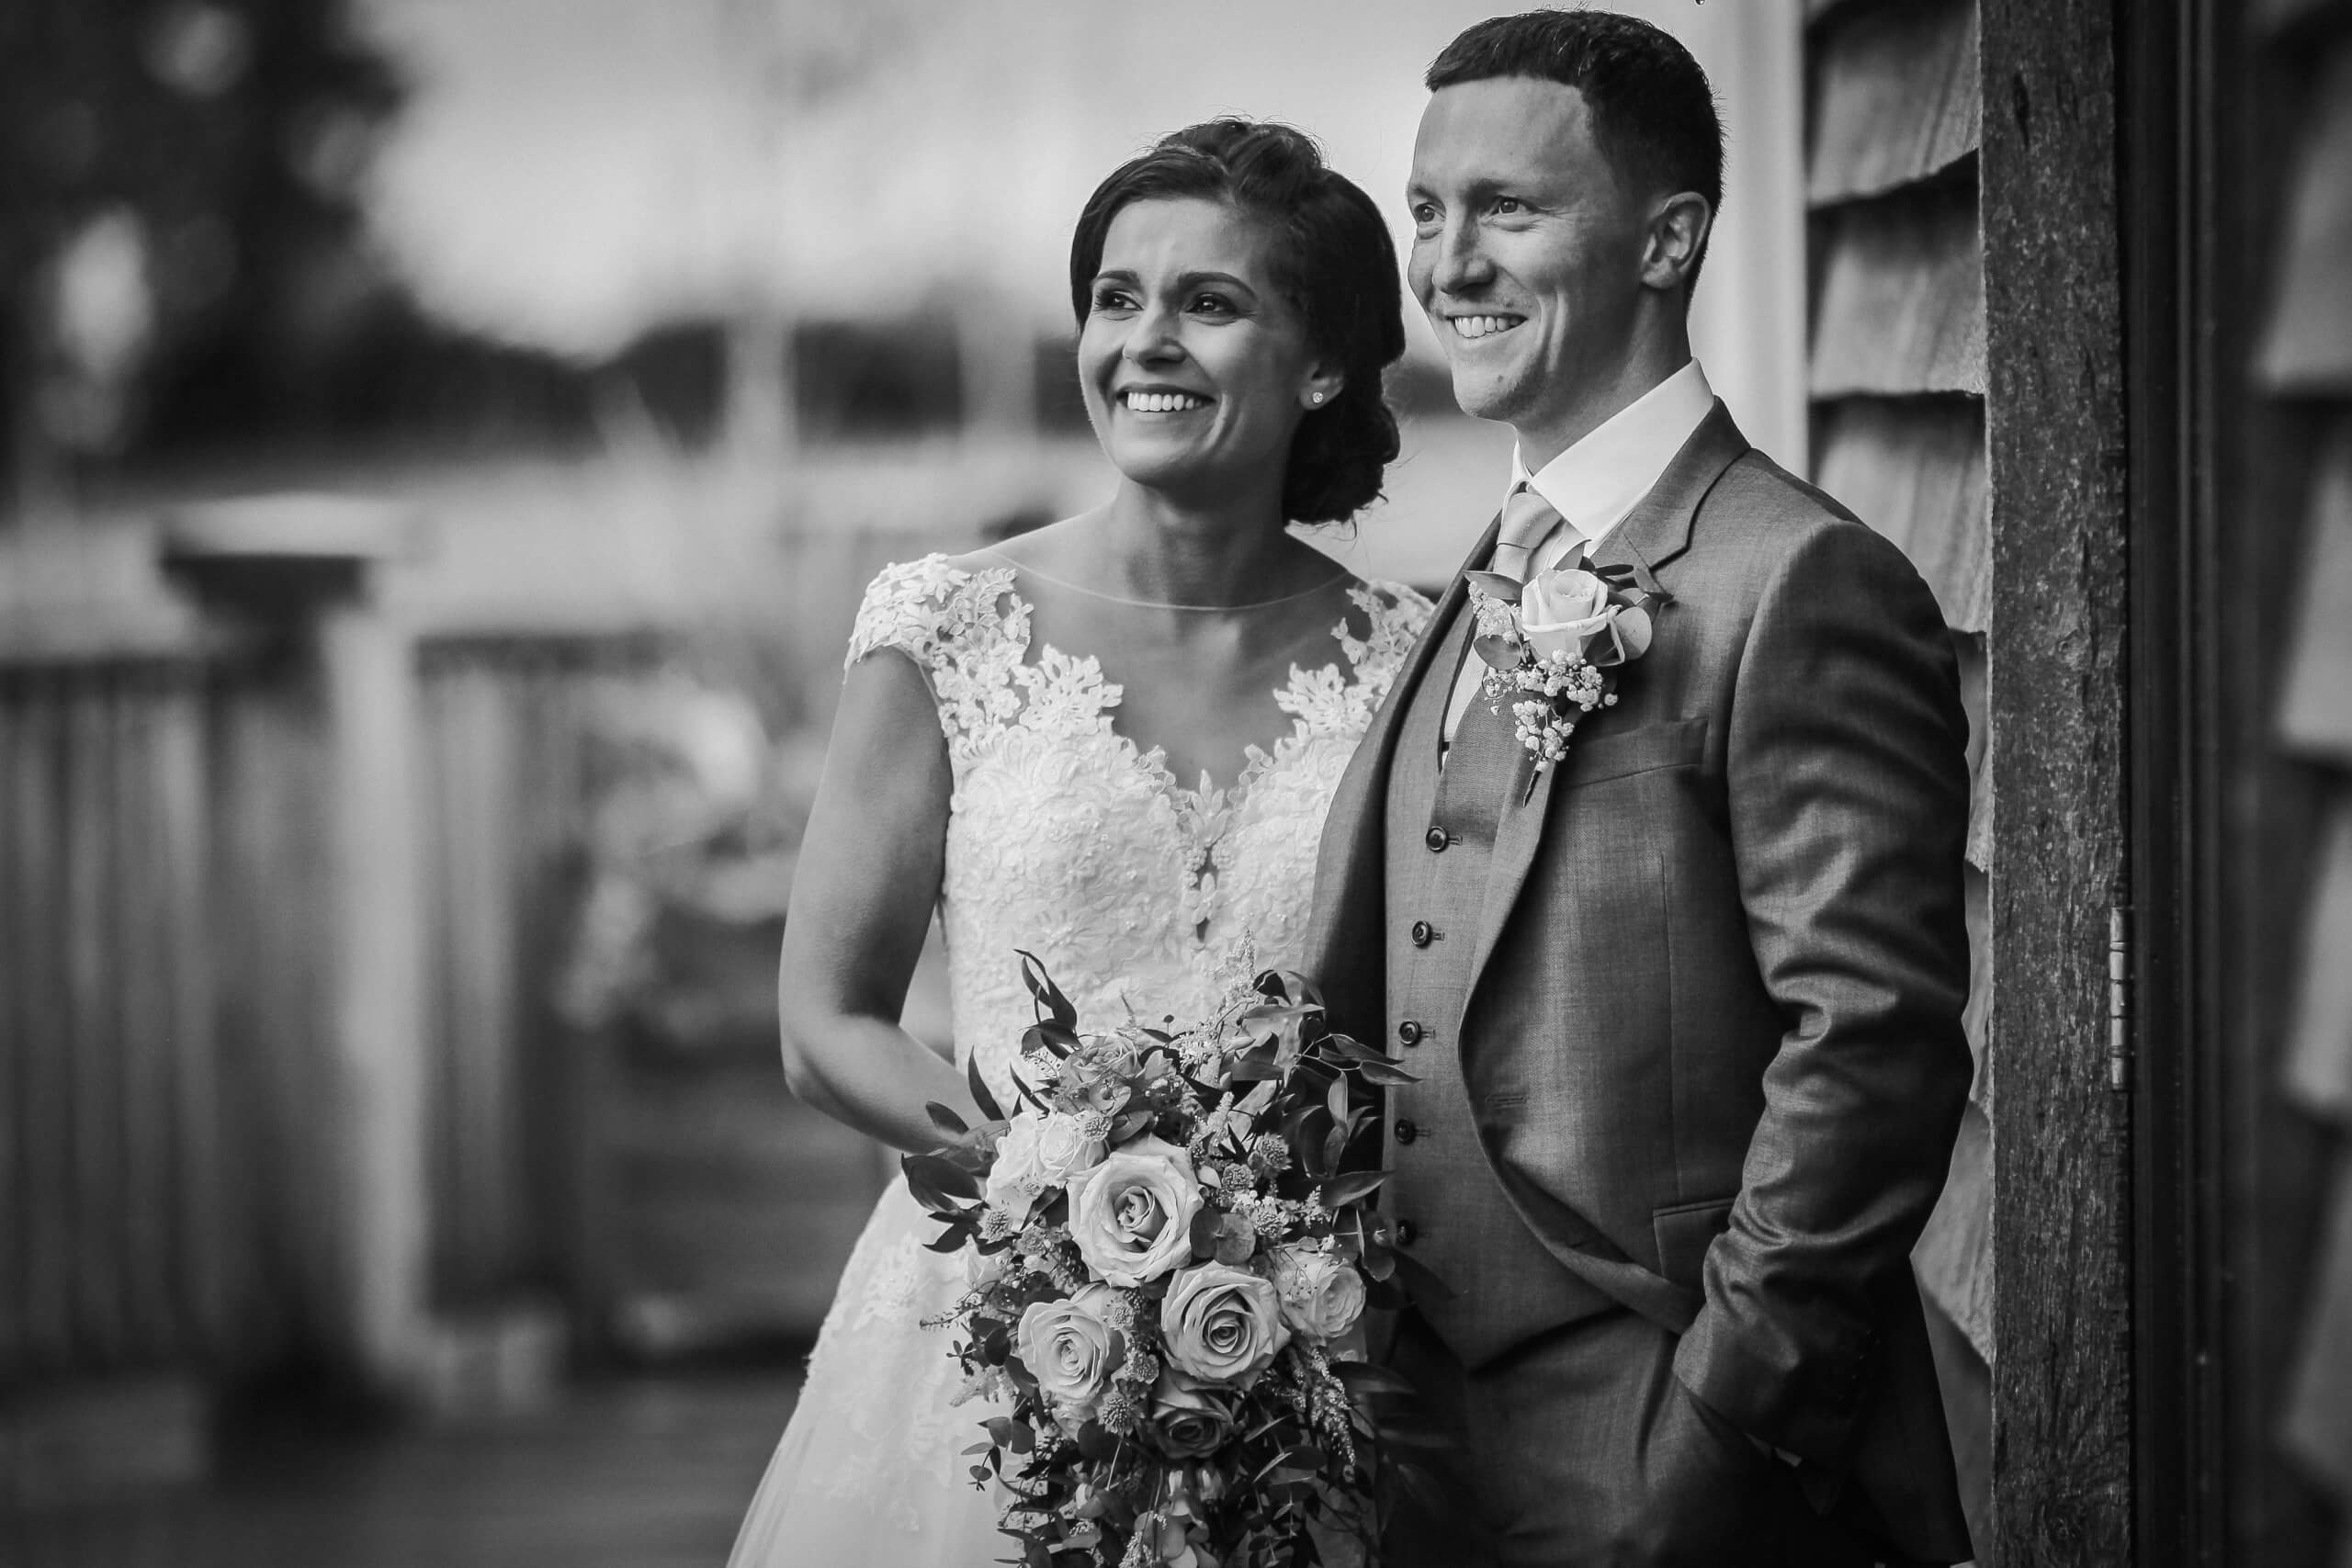 Lancashire wedding photographer Wes Simpson black and white portrait of bride and groom